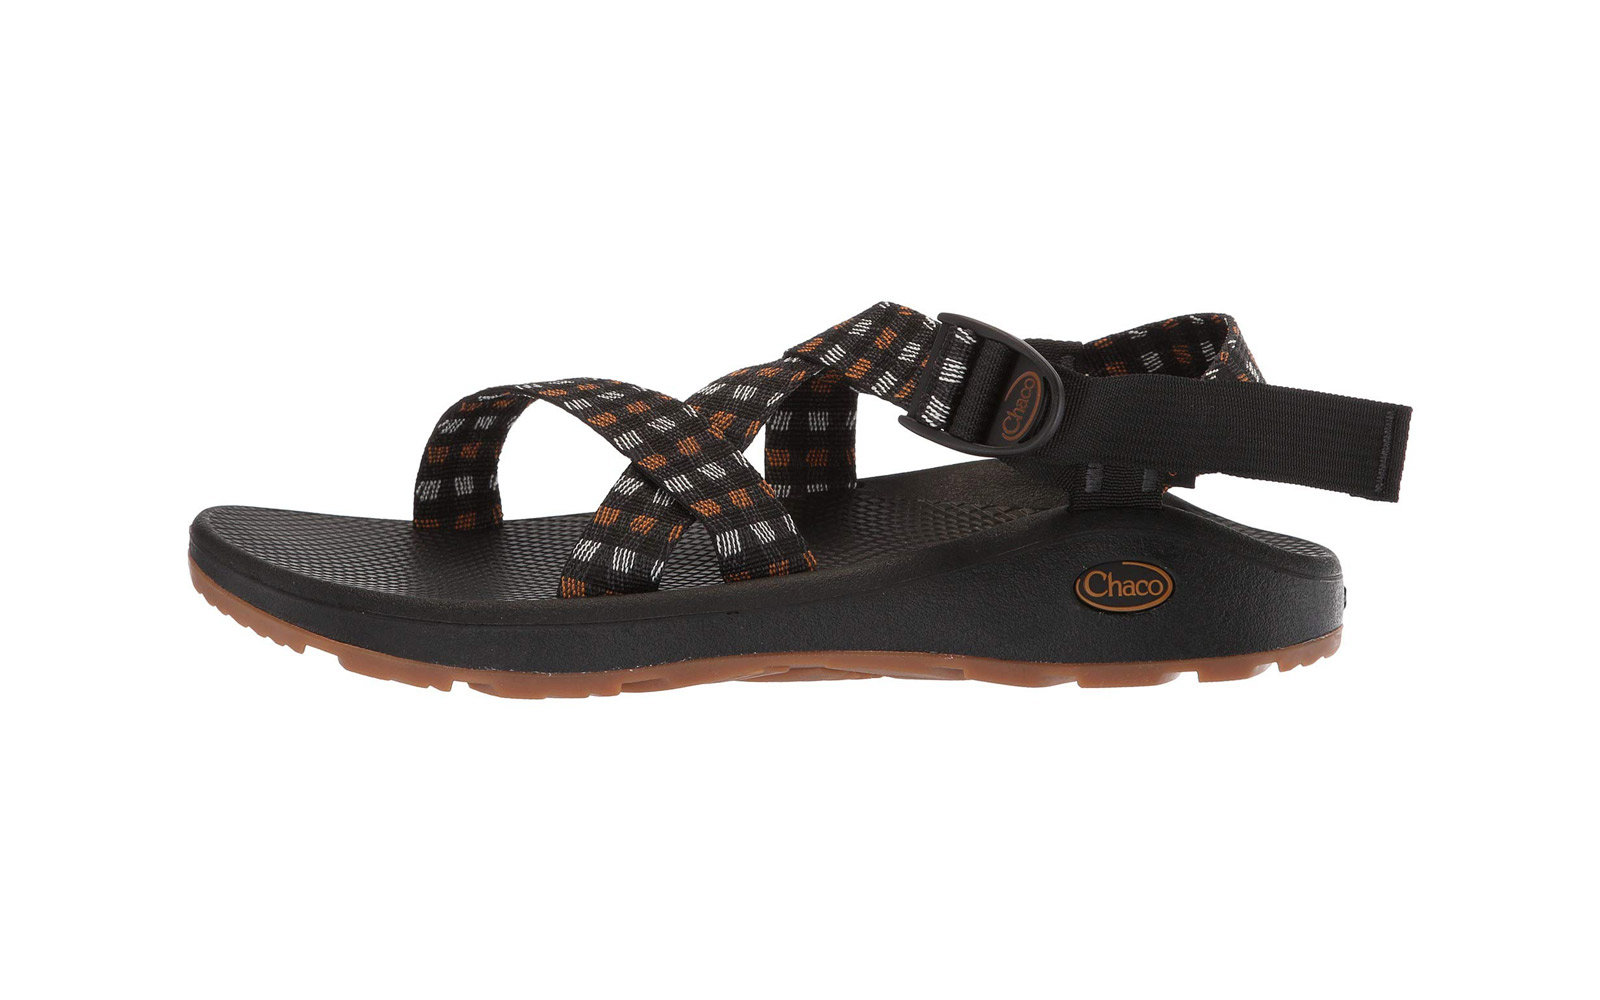 f41f2fa5ef9b The Best Men s Sandals to Pack for Your Next Vacation